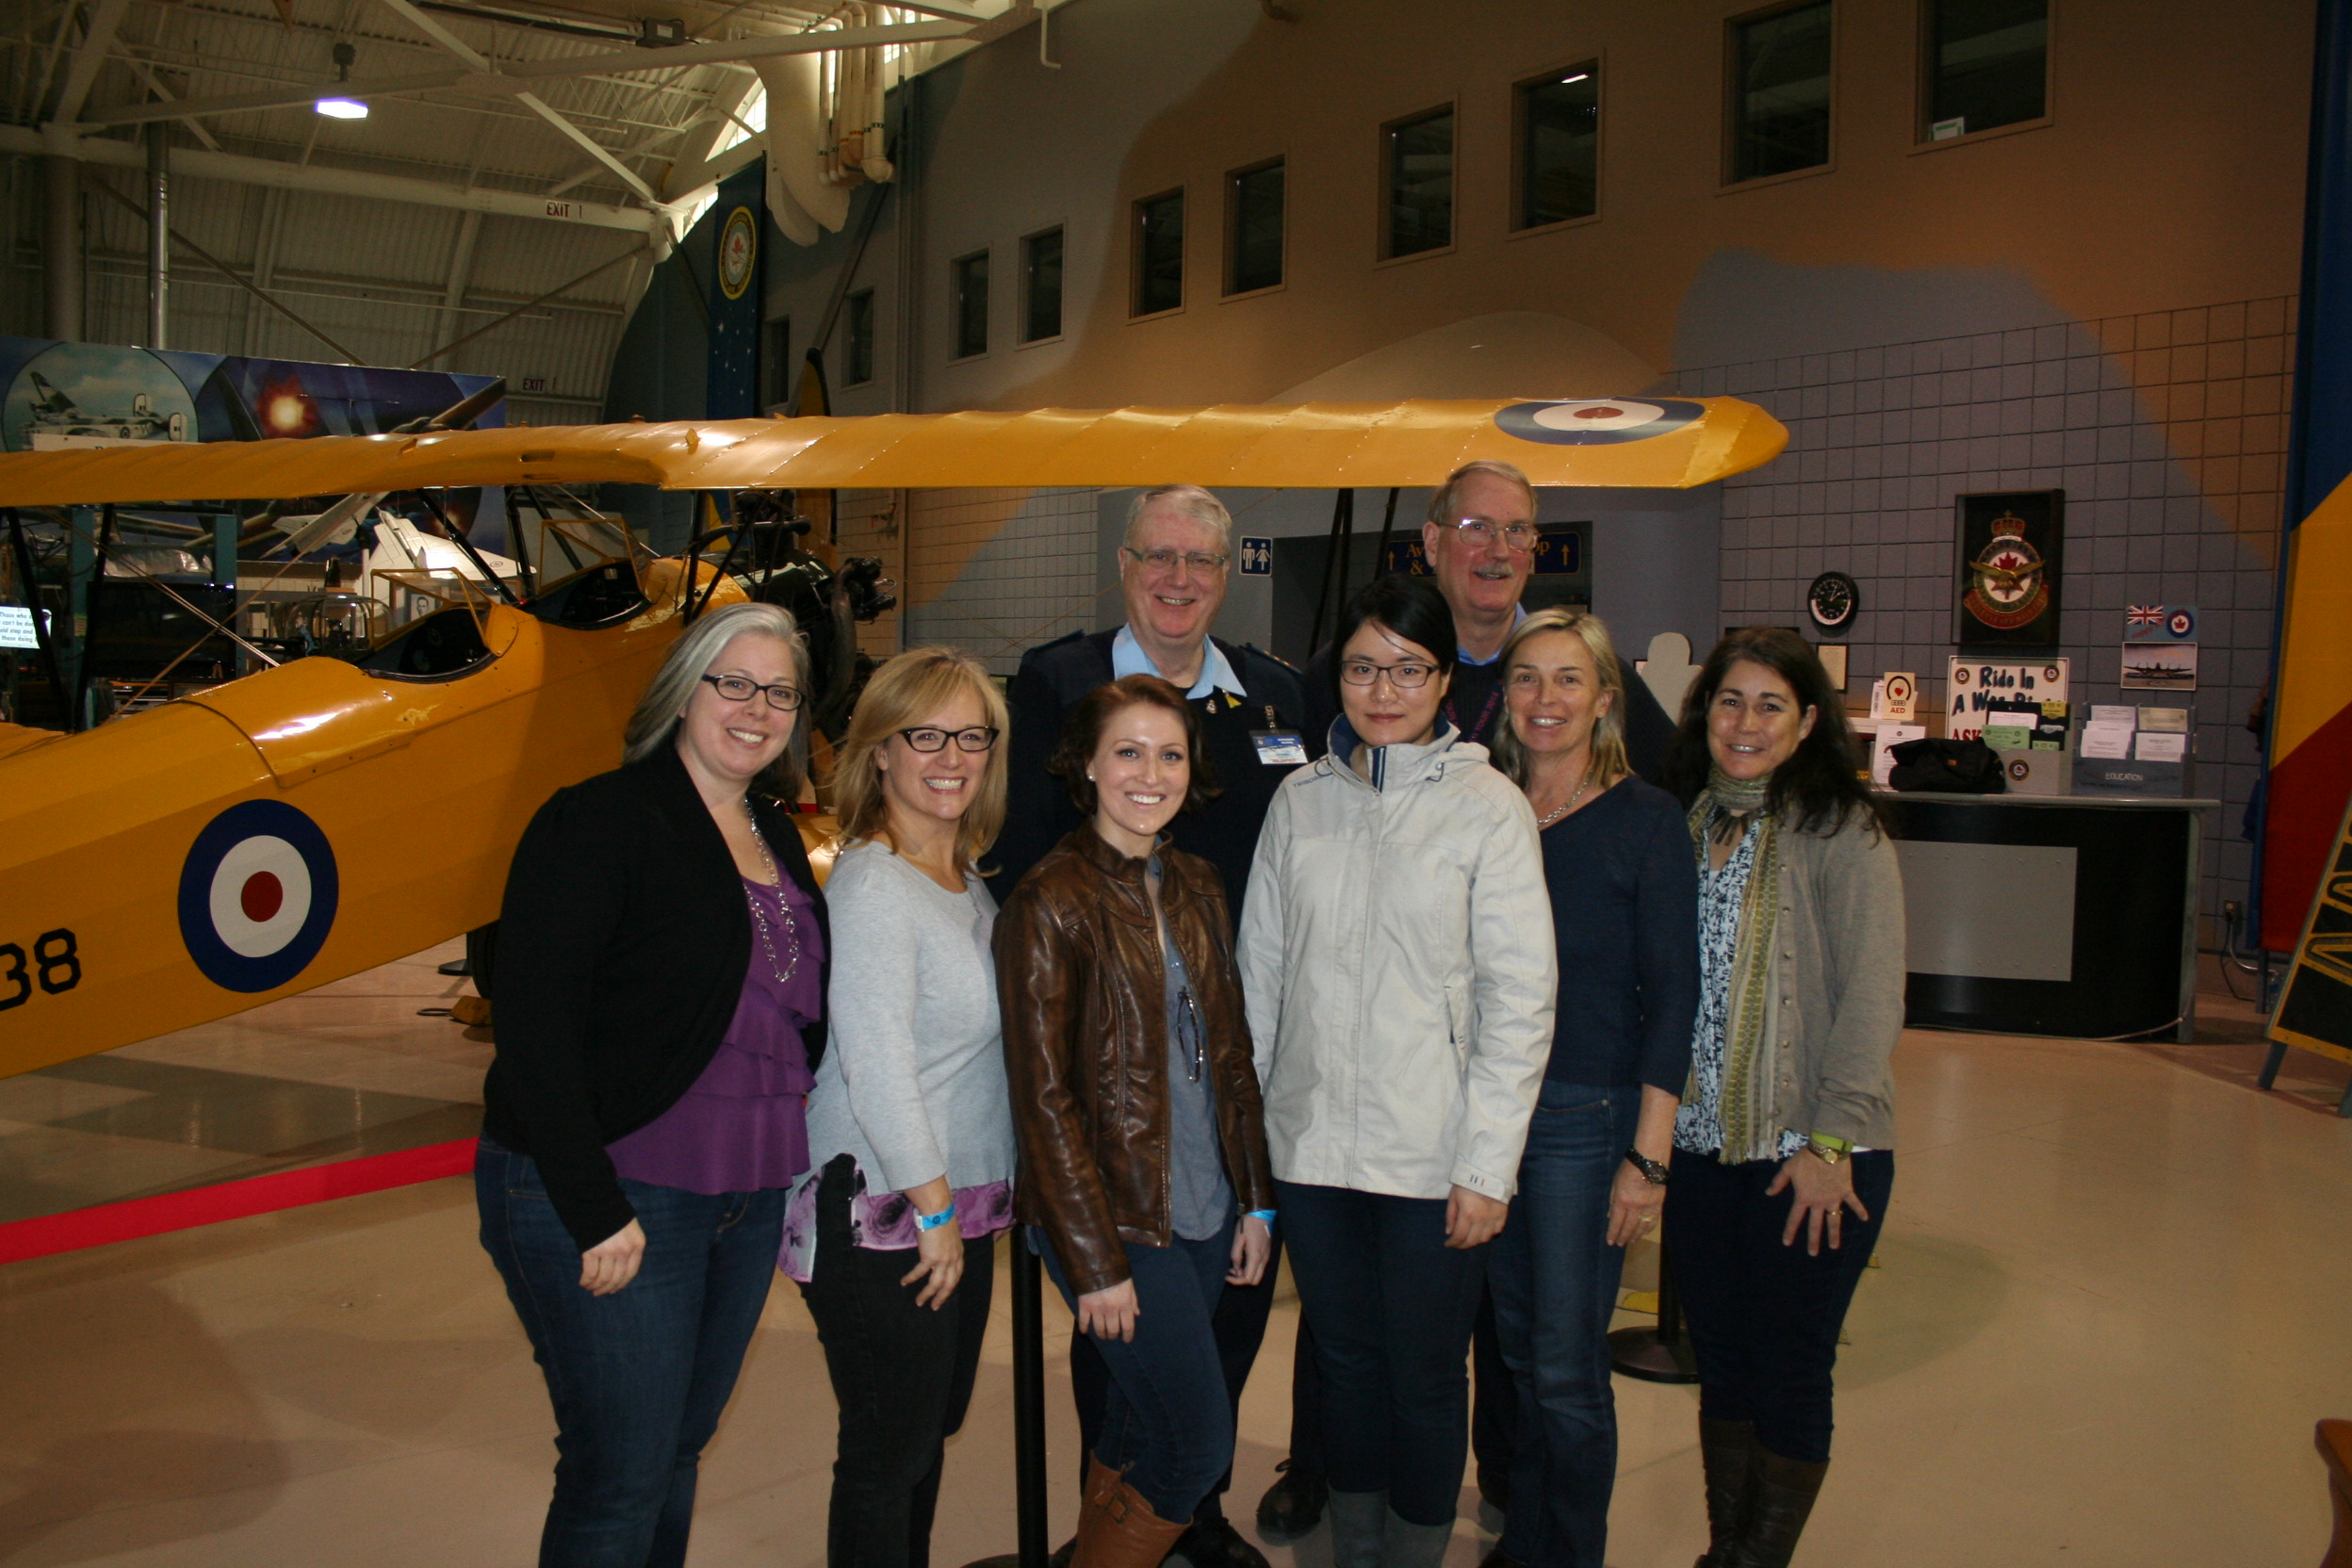 The 99's visit the CWHM